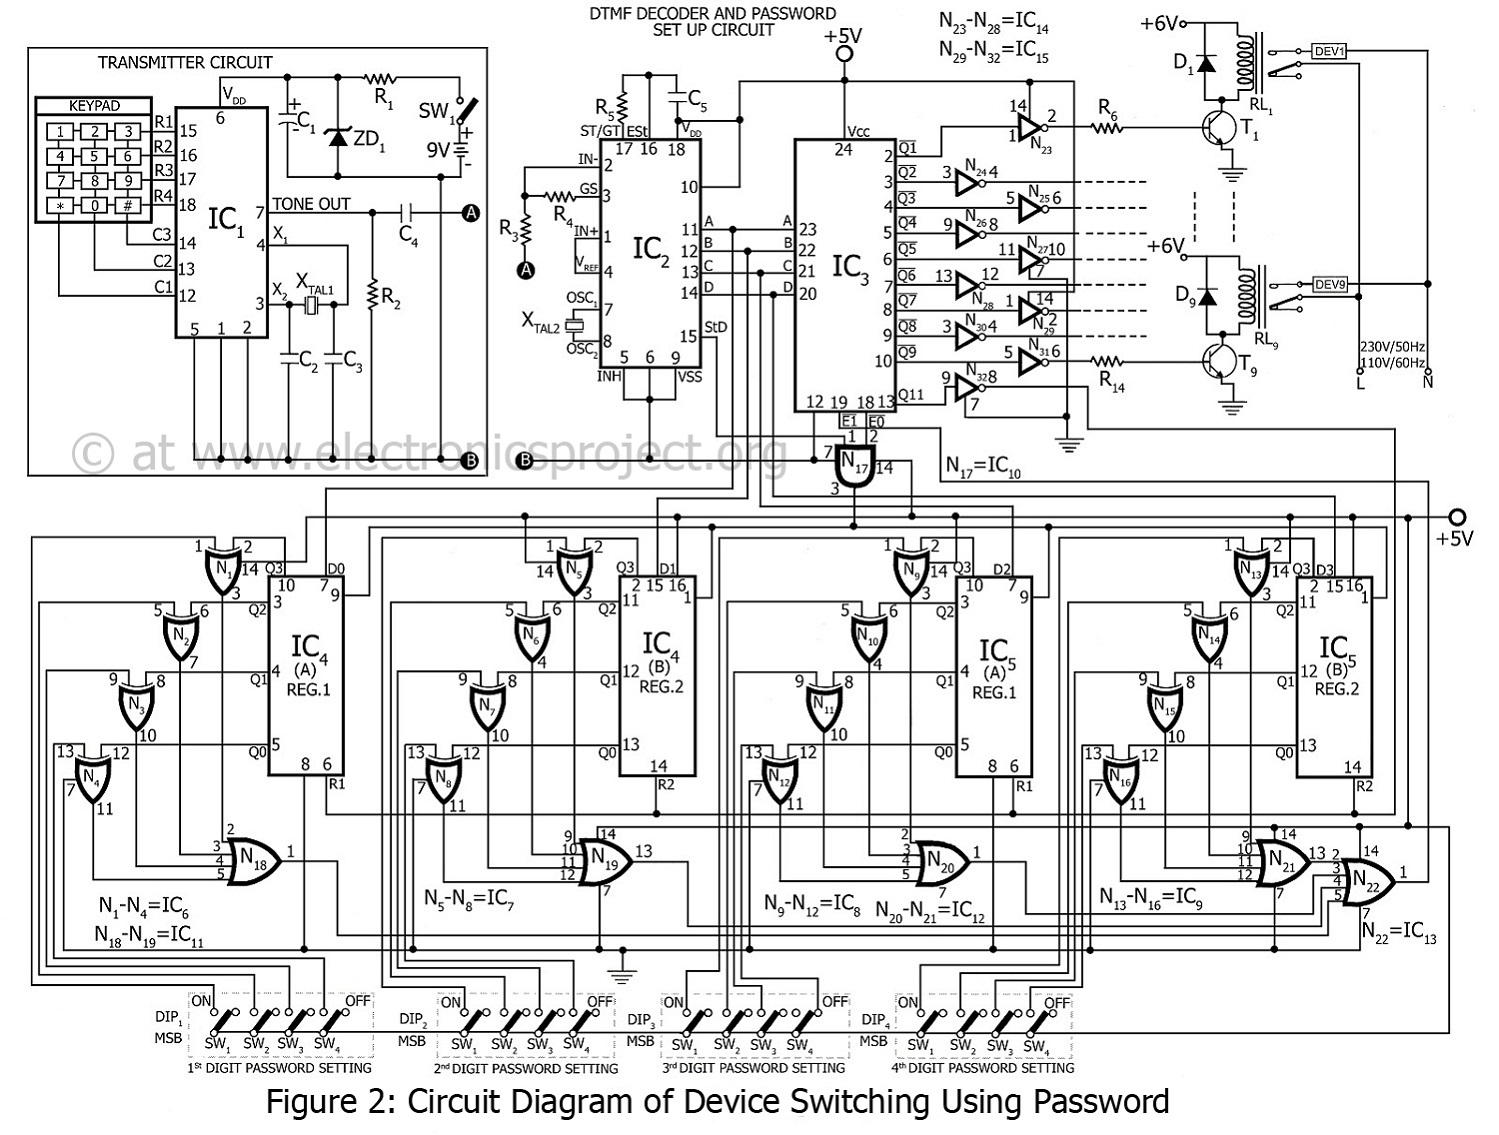 Results Page 235 About Splitter Circuit Searching Circuits At Wiring Diagram Quiz Together With Game Show Buzzer Device Switching Using Password